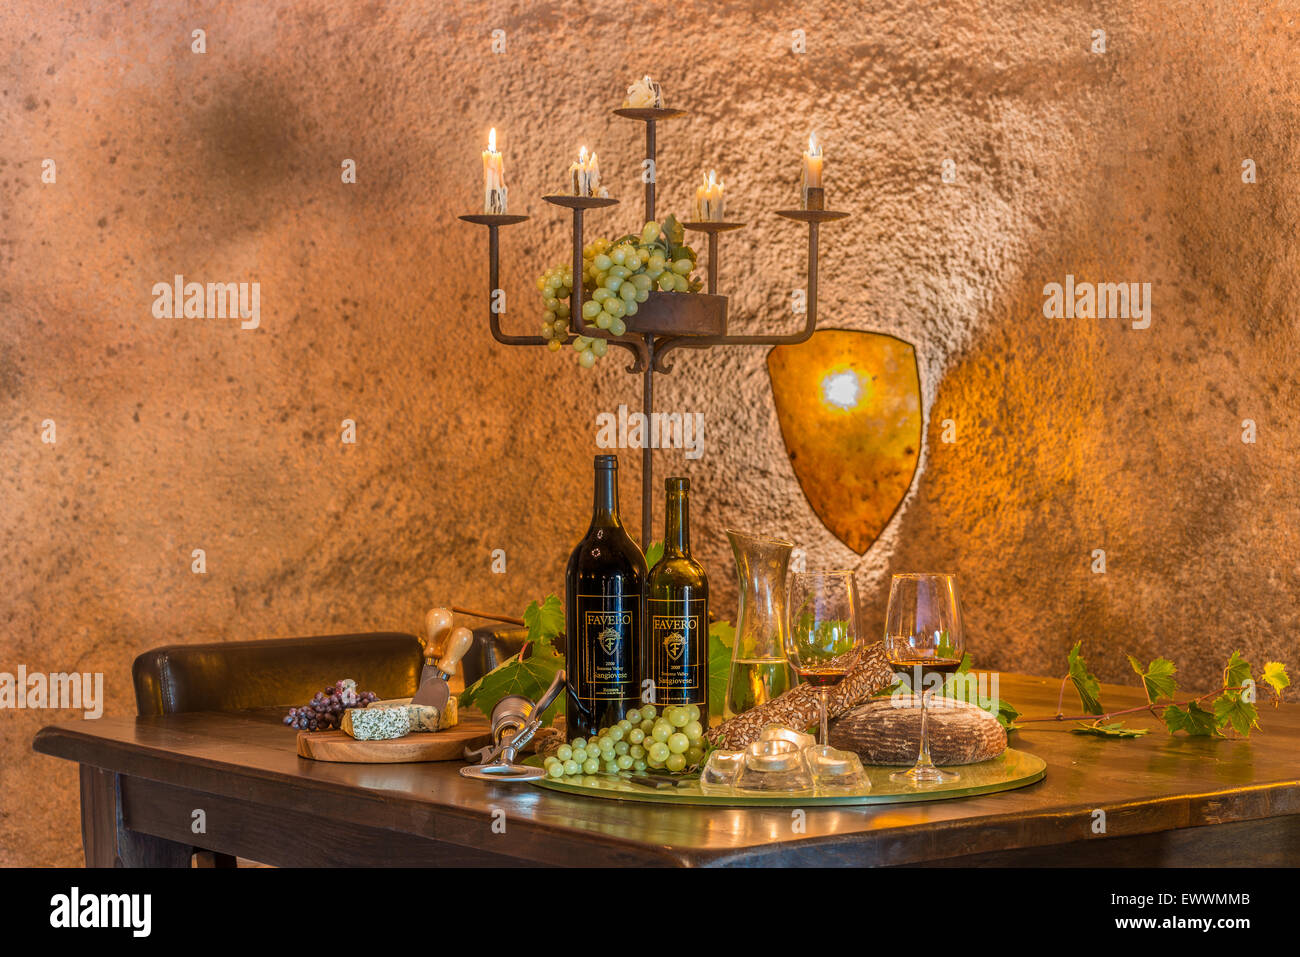 Wine cave featuring a bread, wine, fruit and cheese platter illuminated by rustic candelabra - Stock Image